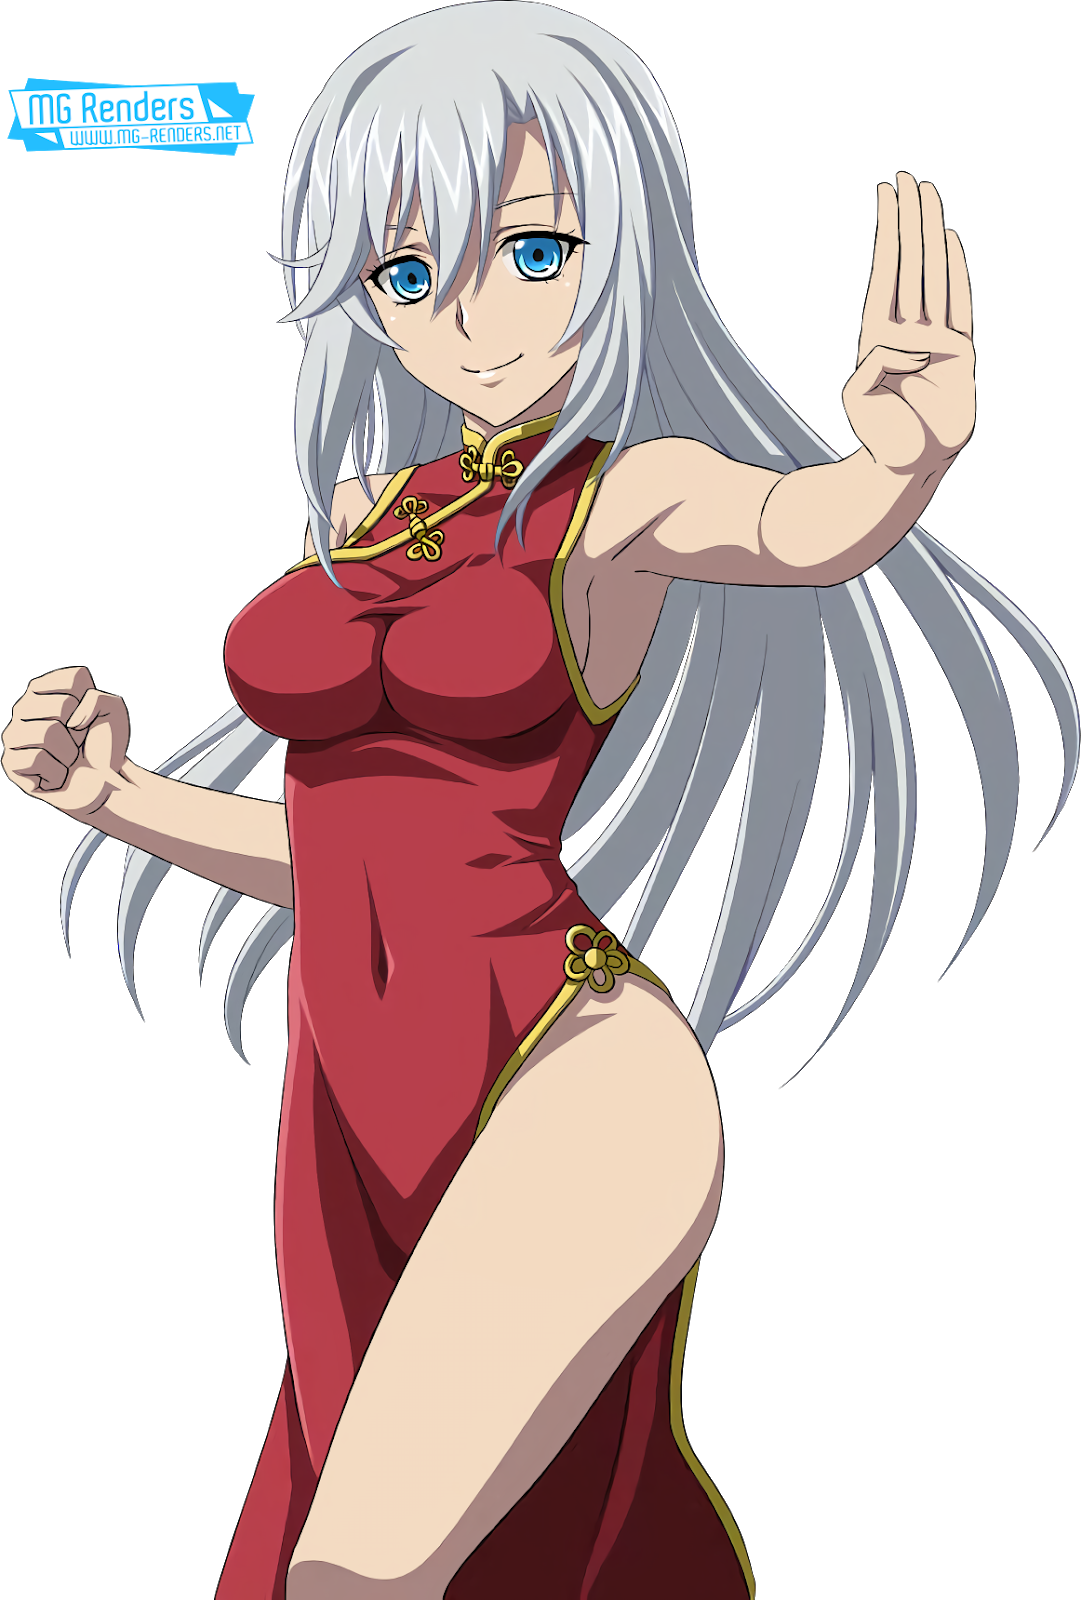 Tags: Anime, Render,  Armpit,  Dress,  La Folia Rihavein,  Strike The Blood,  PNG, Image, Picture